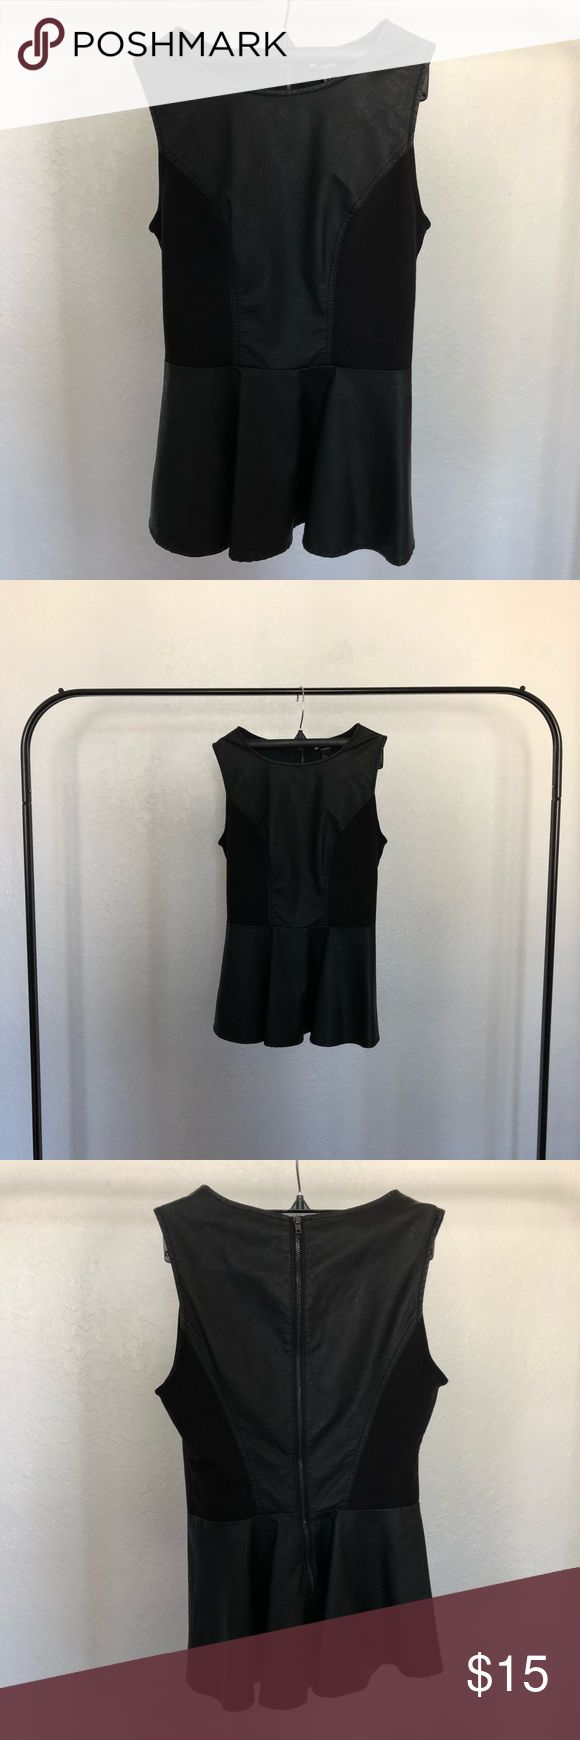 Faux Leather Peplum Top by Forever21 Faux Leather Peplum Top by Forever21.  Item is in a size 2 or extra small.  No wear or tear.  Top is still in perfect condition. Forever 21 Tops Blouses